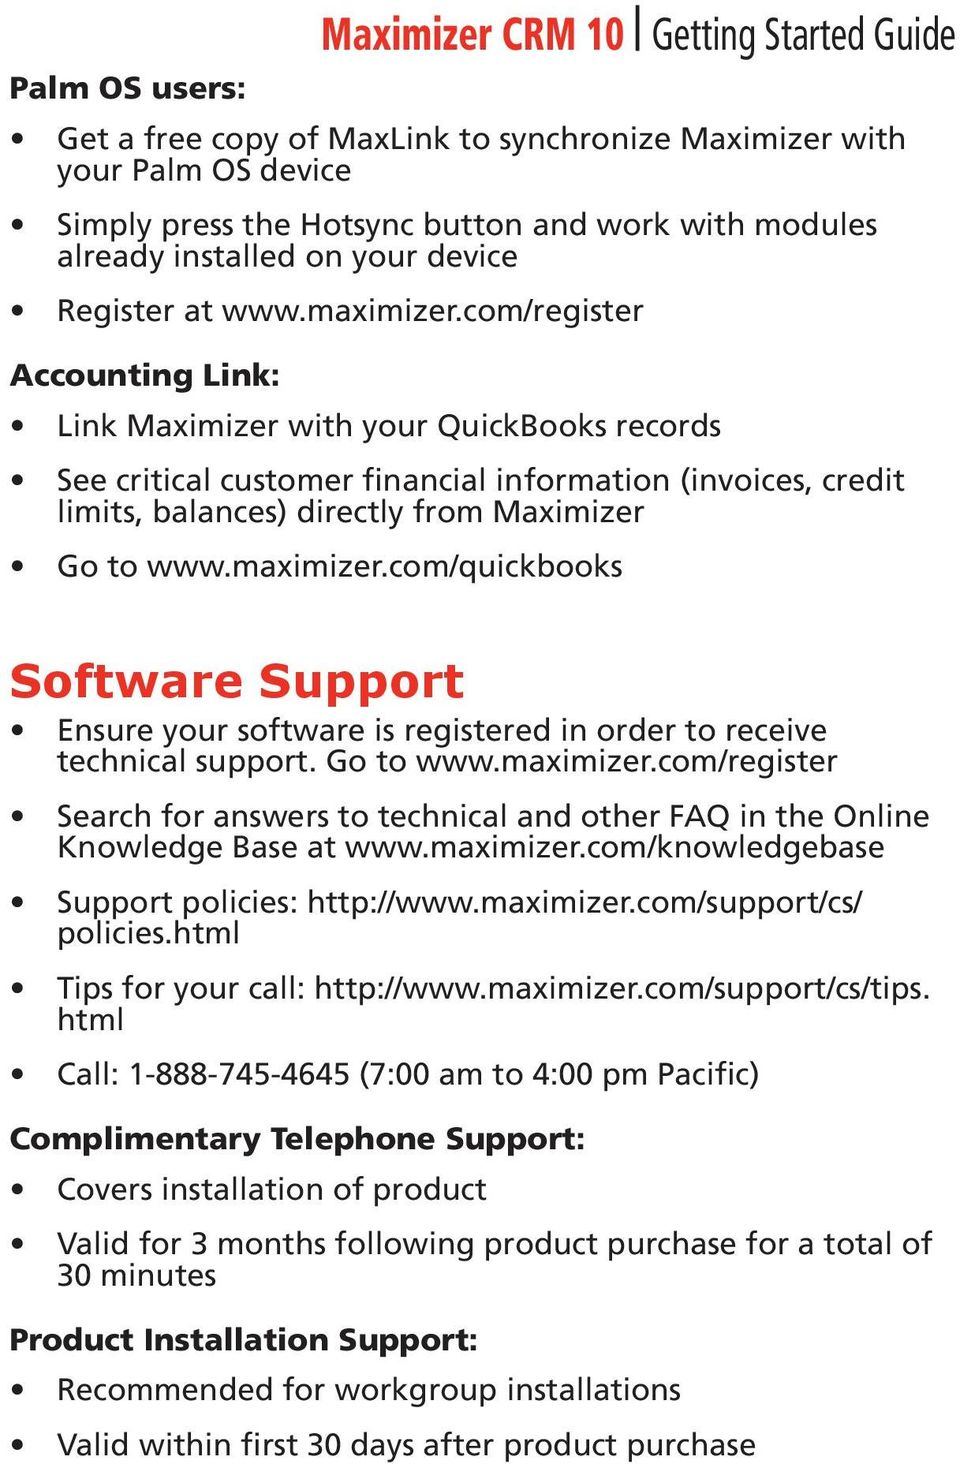 com/register Accounting Link: Link Maximizer with your QuickBooks records See critical customer financial information (invoices, credit limits, balances) directly from Maximizer Go to www.maximizer.